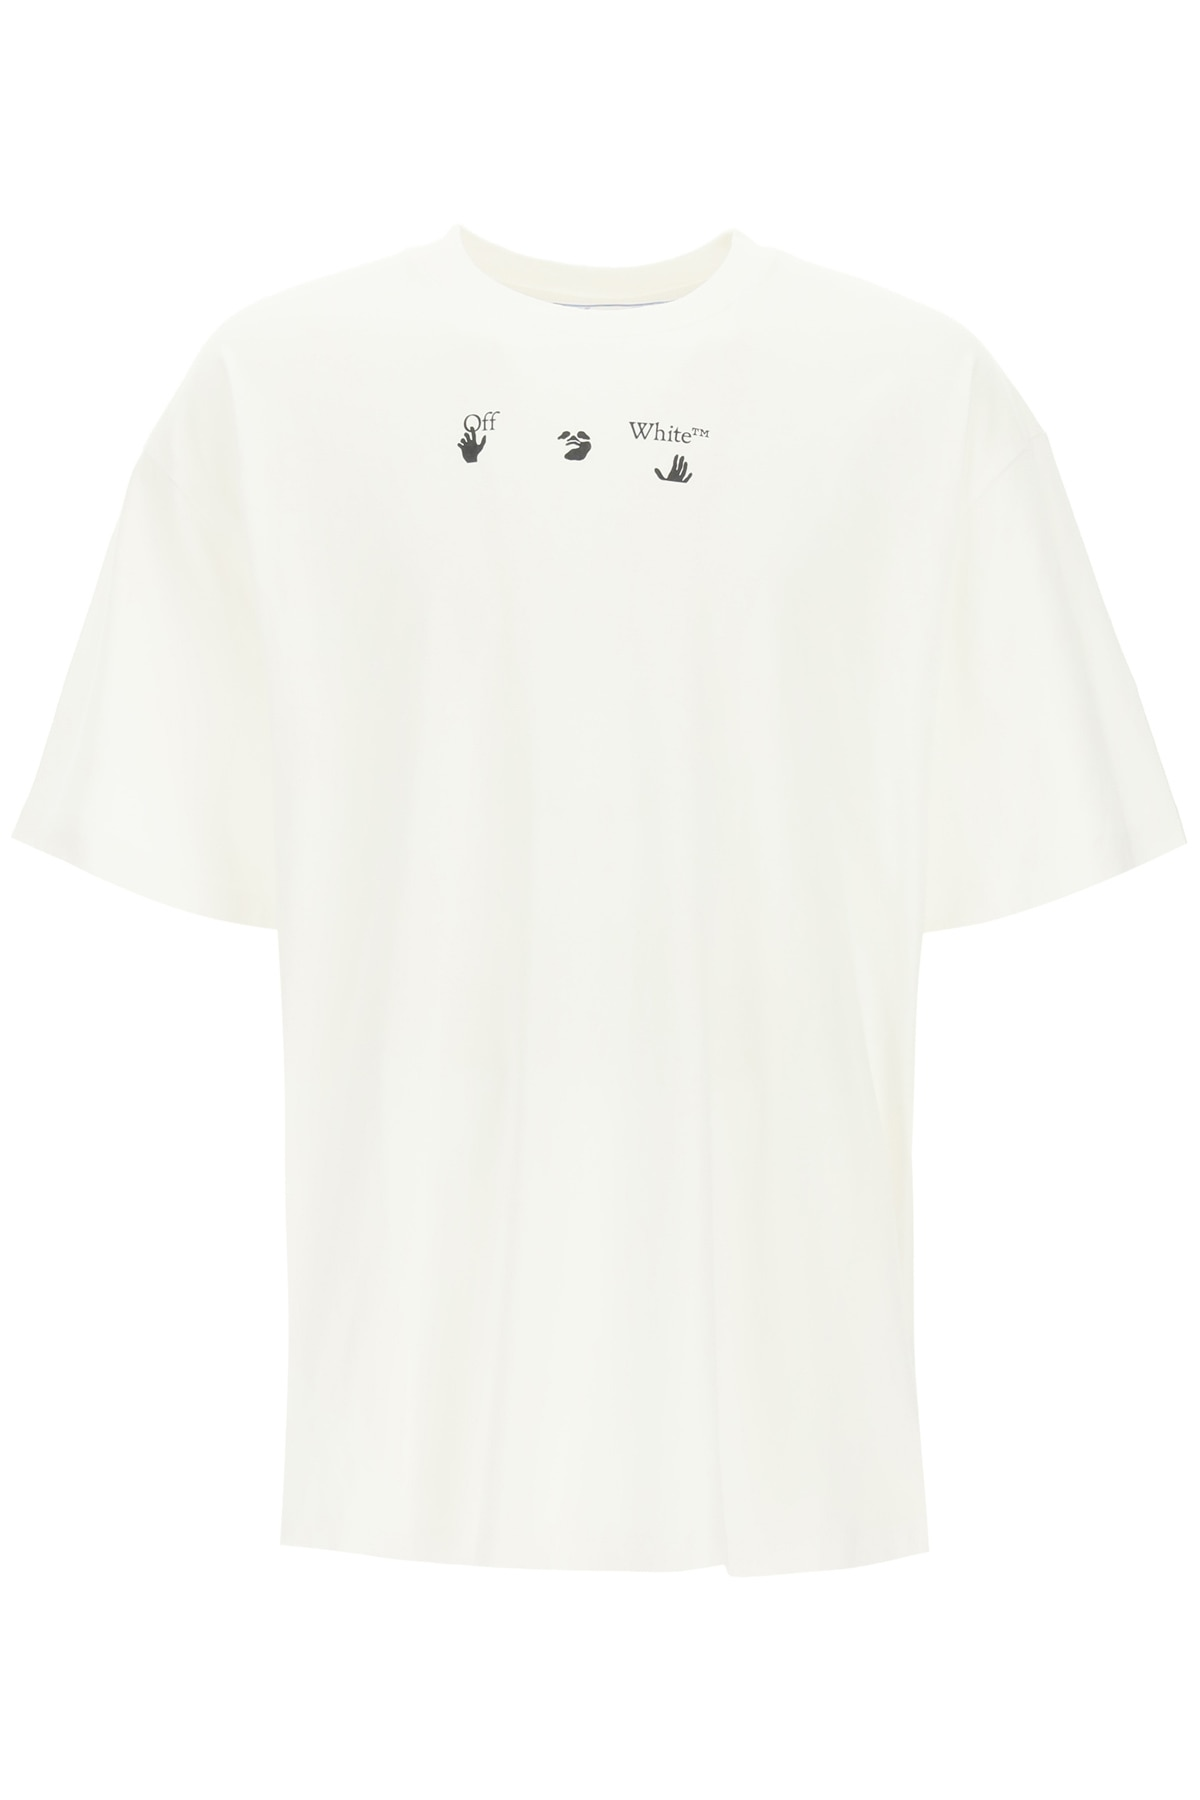 Off-White Cottons ARROWS MARKER PRINT OVERSIZED T-SHIRT